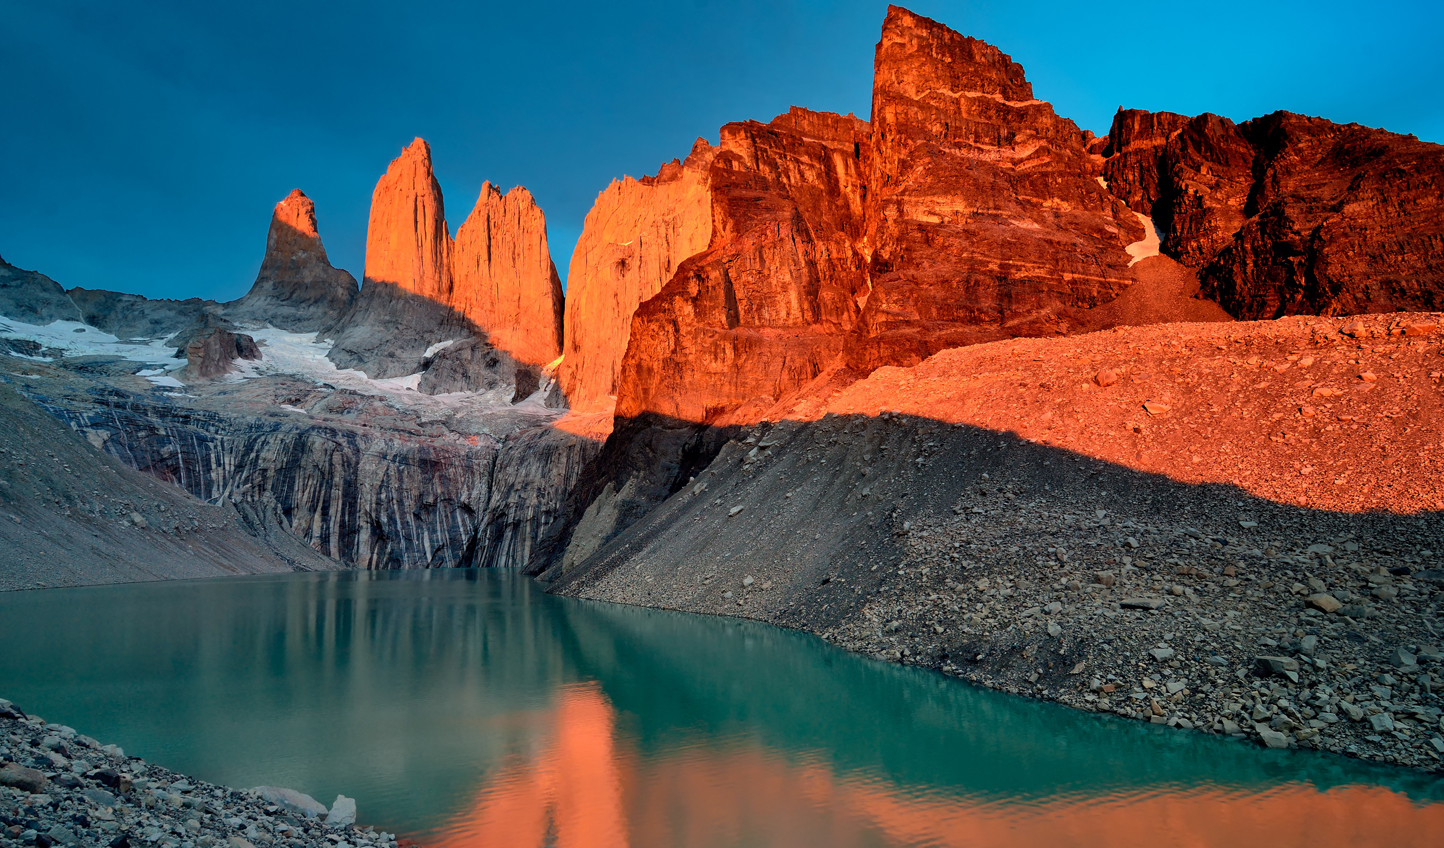 The breathtaking beauty of Torres del Paine at sunset